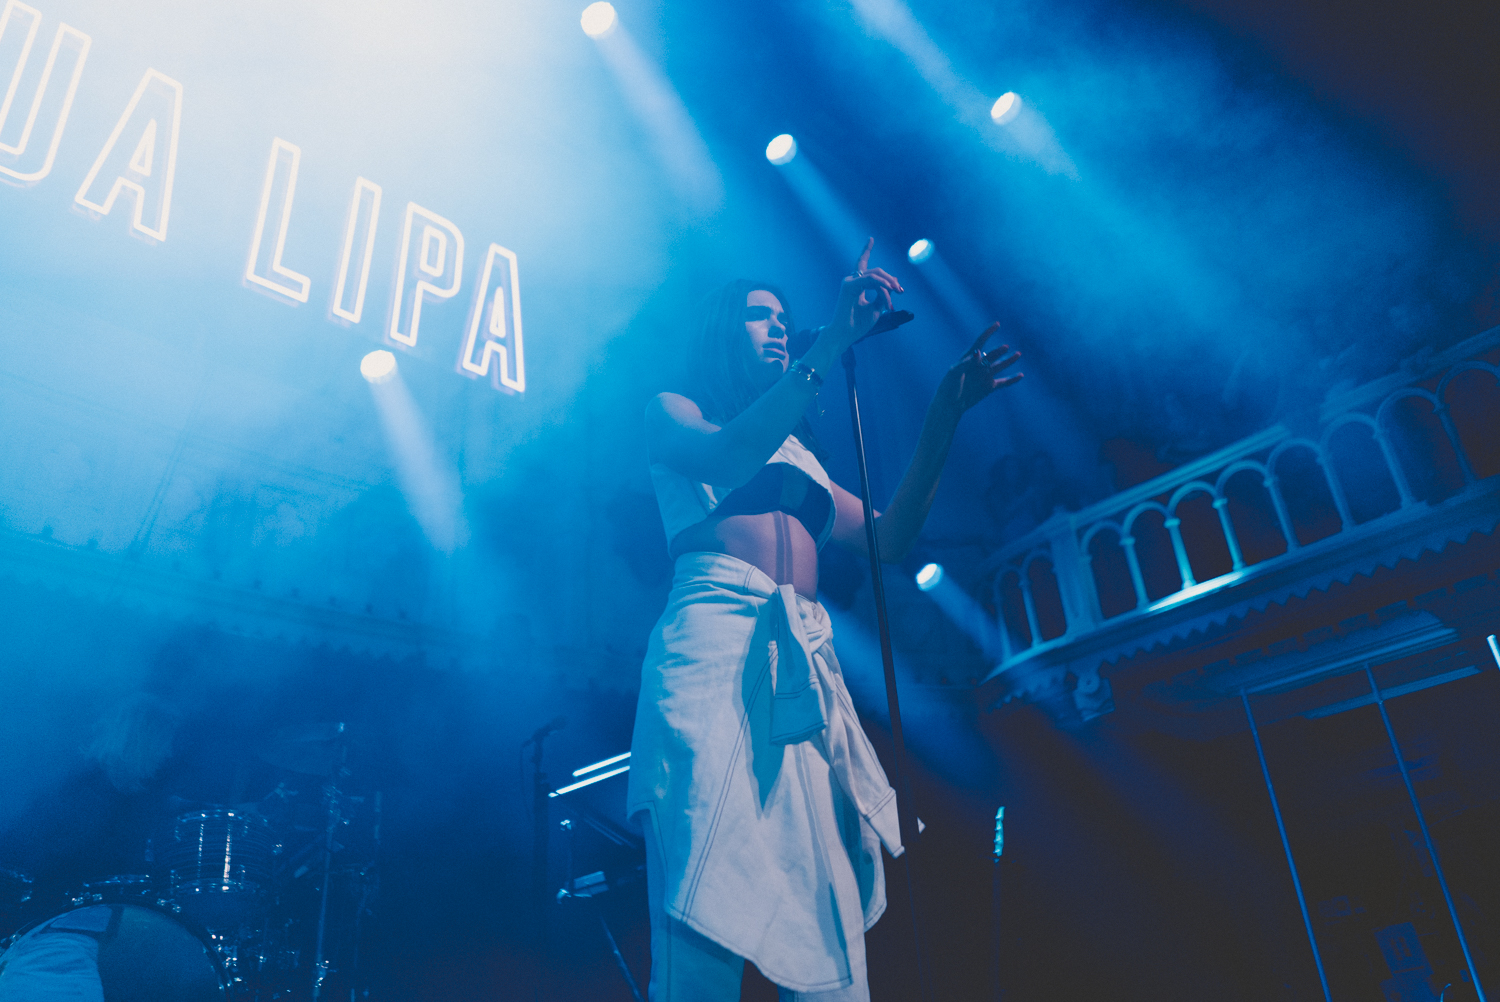 dua-lipa-amsterdam-by-pawel-ptak-30-of-38